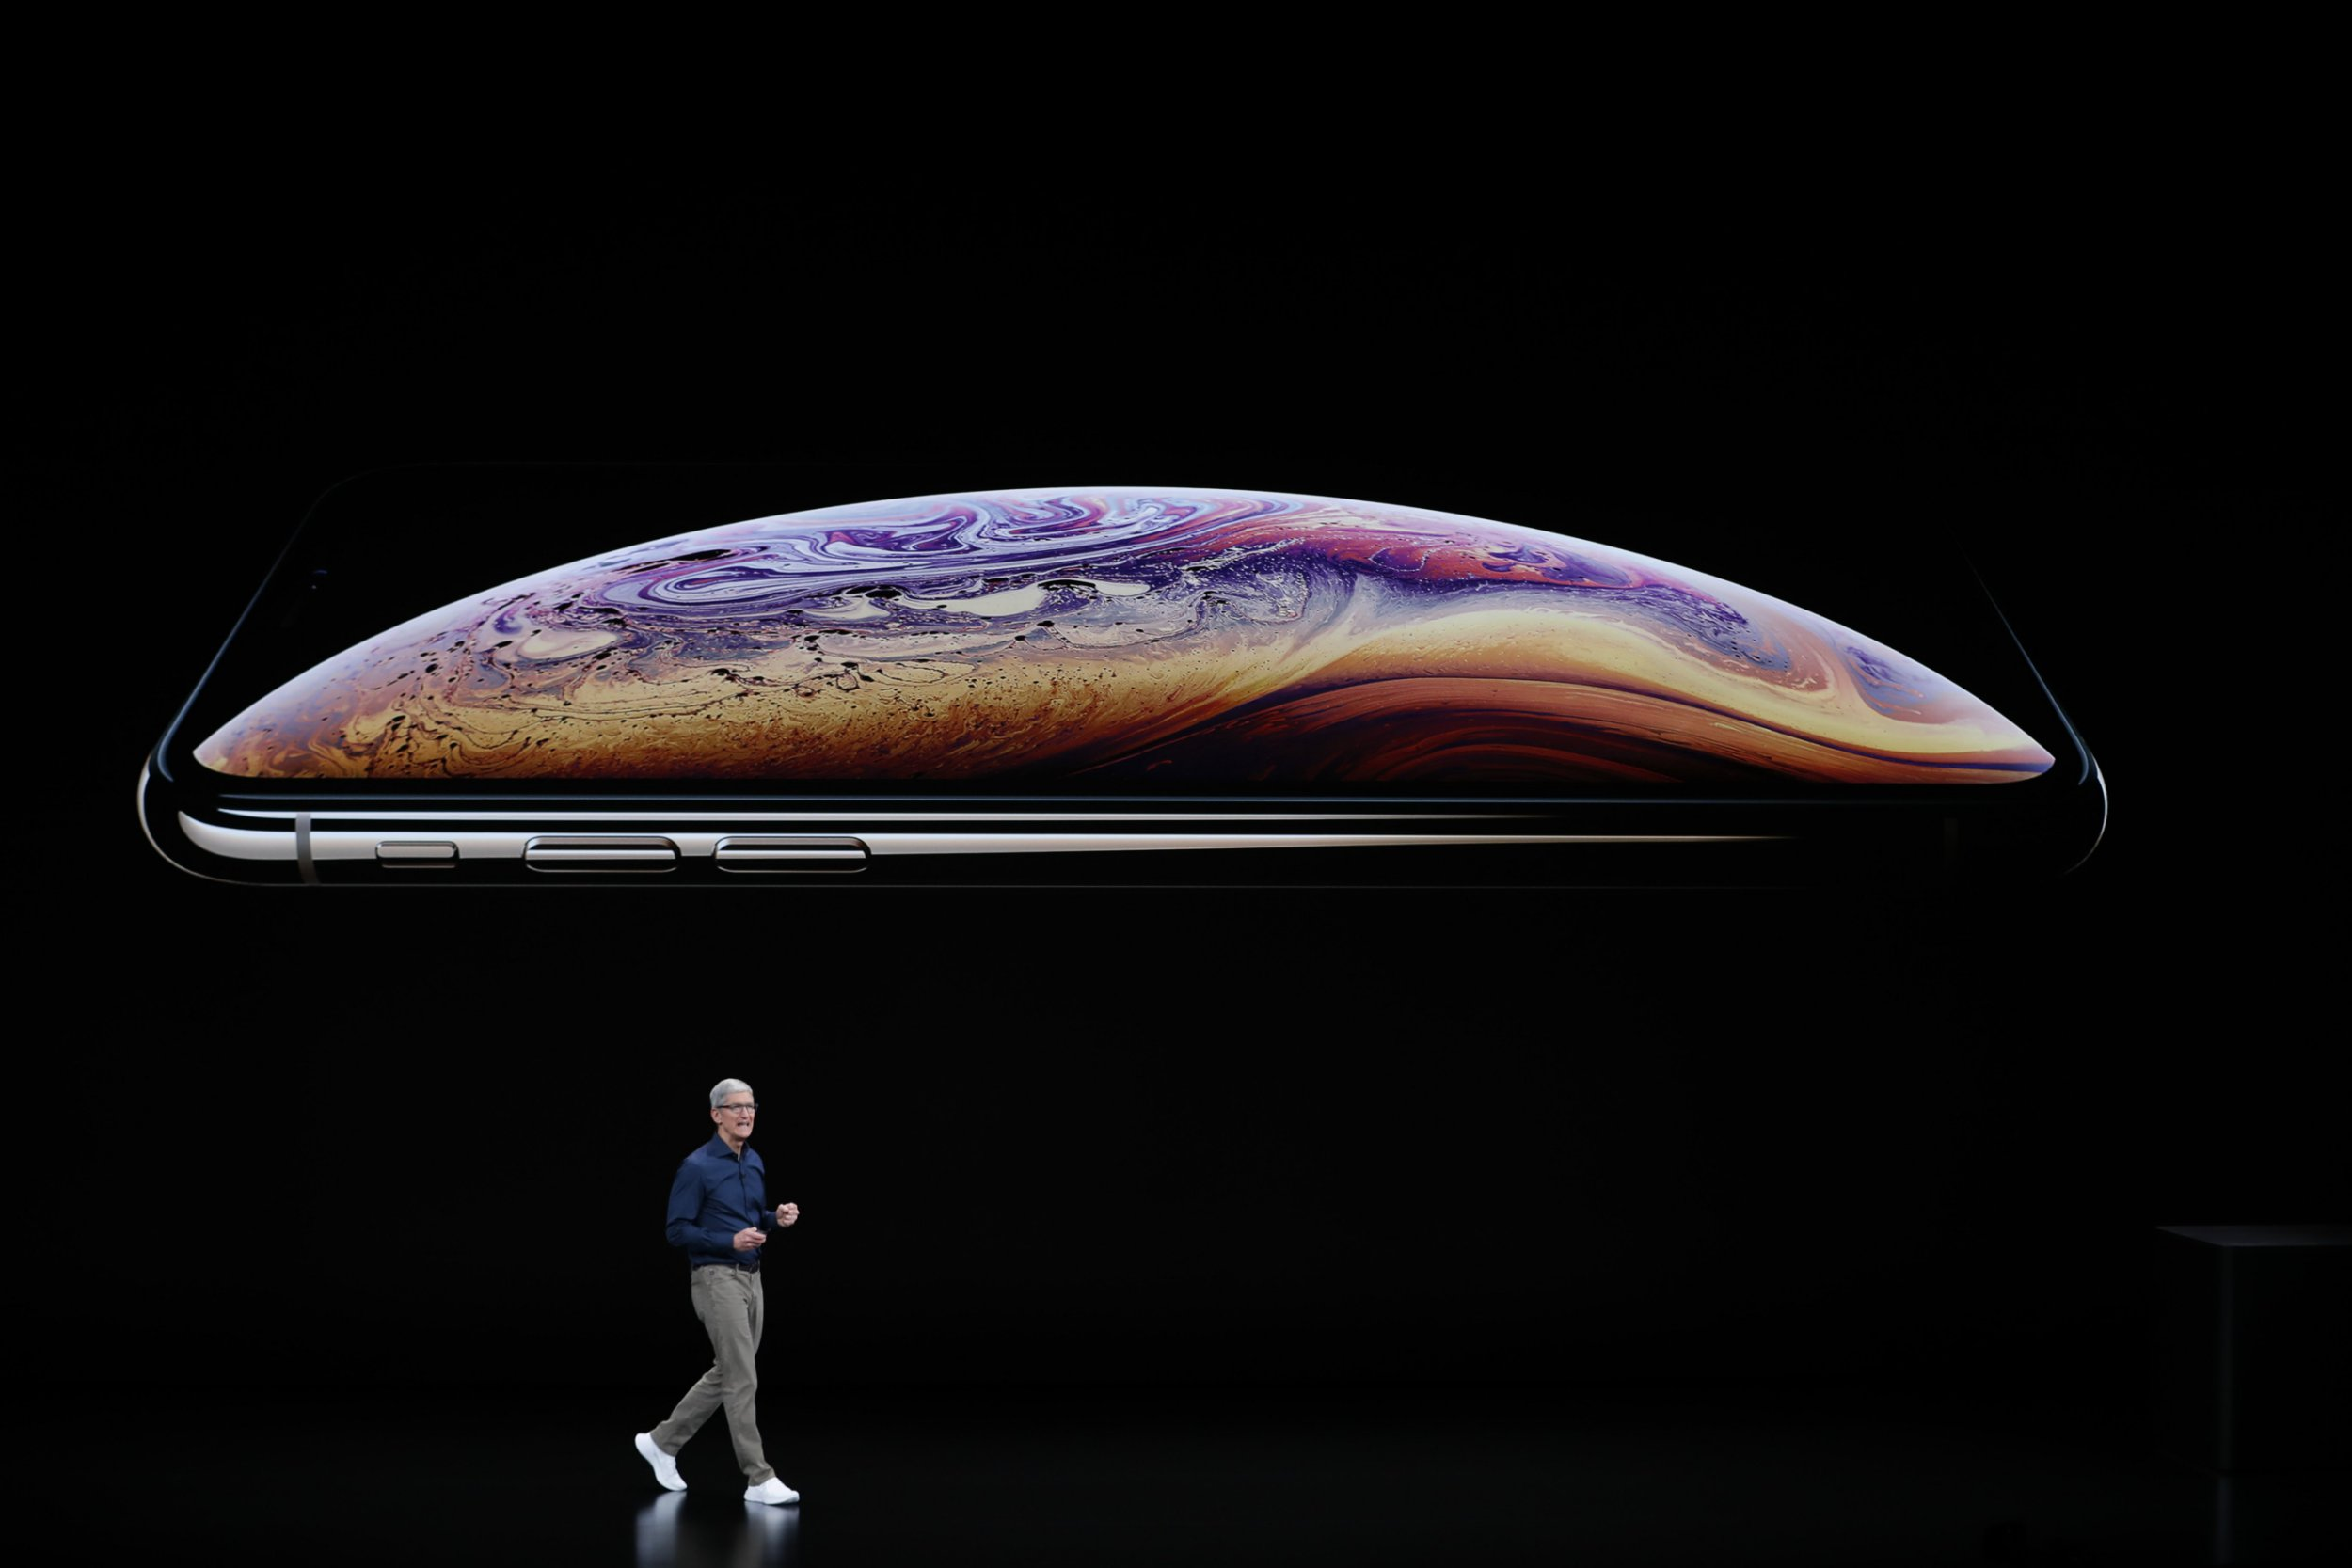 Tim Cook, CEO of Apple, speaks about the iPhone XS and XS Max at an Apple Inc product launch event at the Steve Jobs Theater in Cupertino, California, U.S., September 12, 2018. REUTERS/Stephen Lam